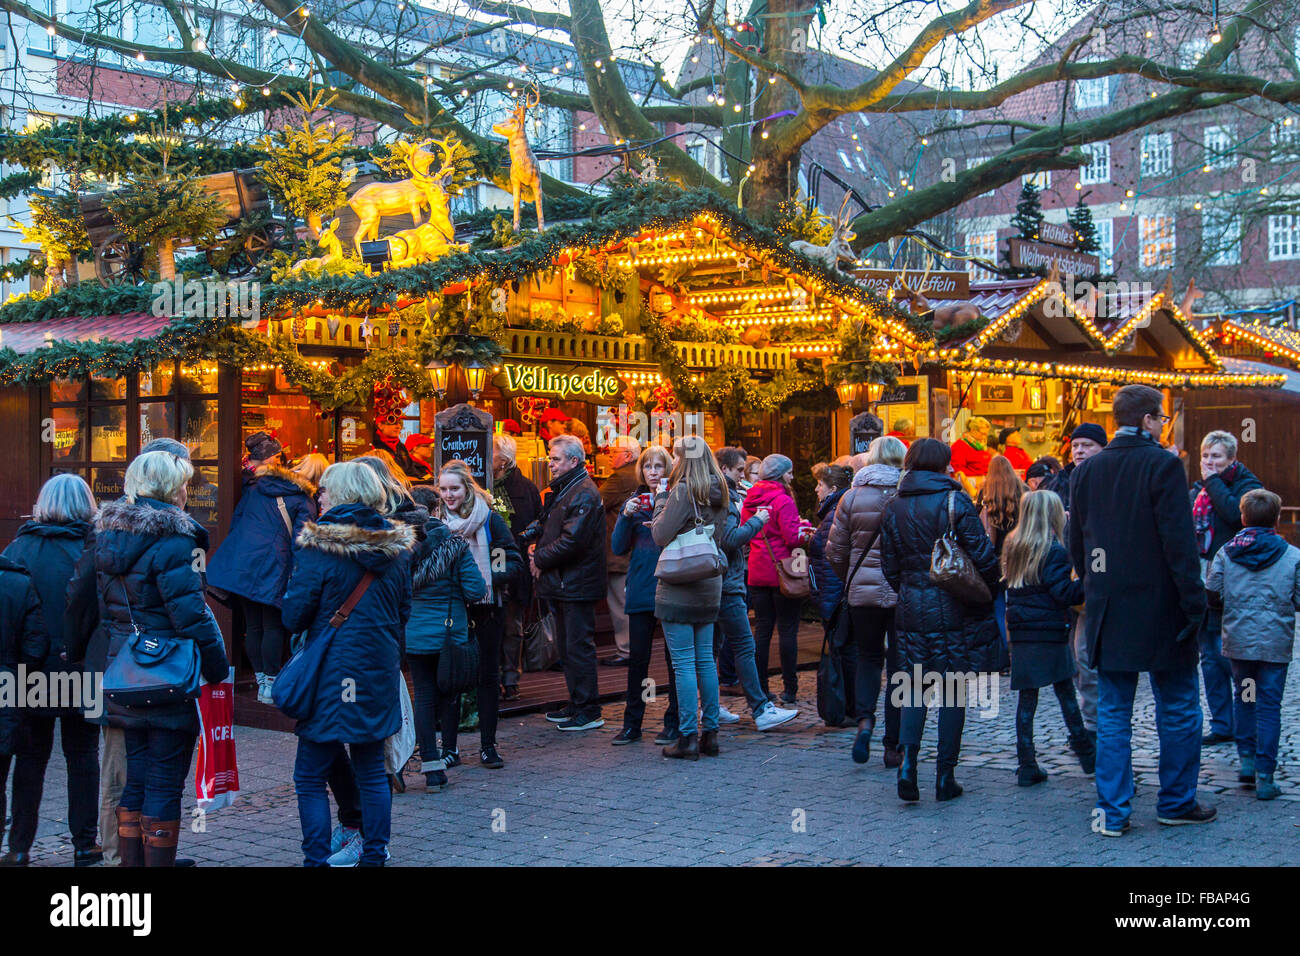 Christmas market in the old town, city center, Münster, Westfalia, Germany behind the city hall, - Stock Image